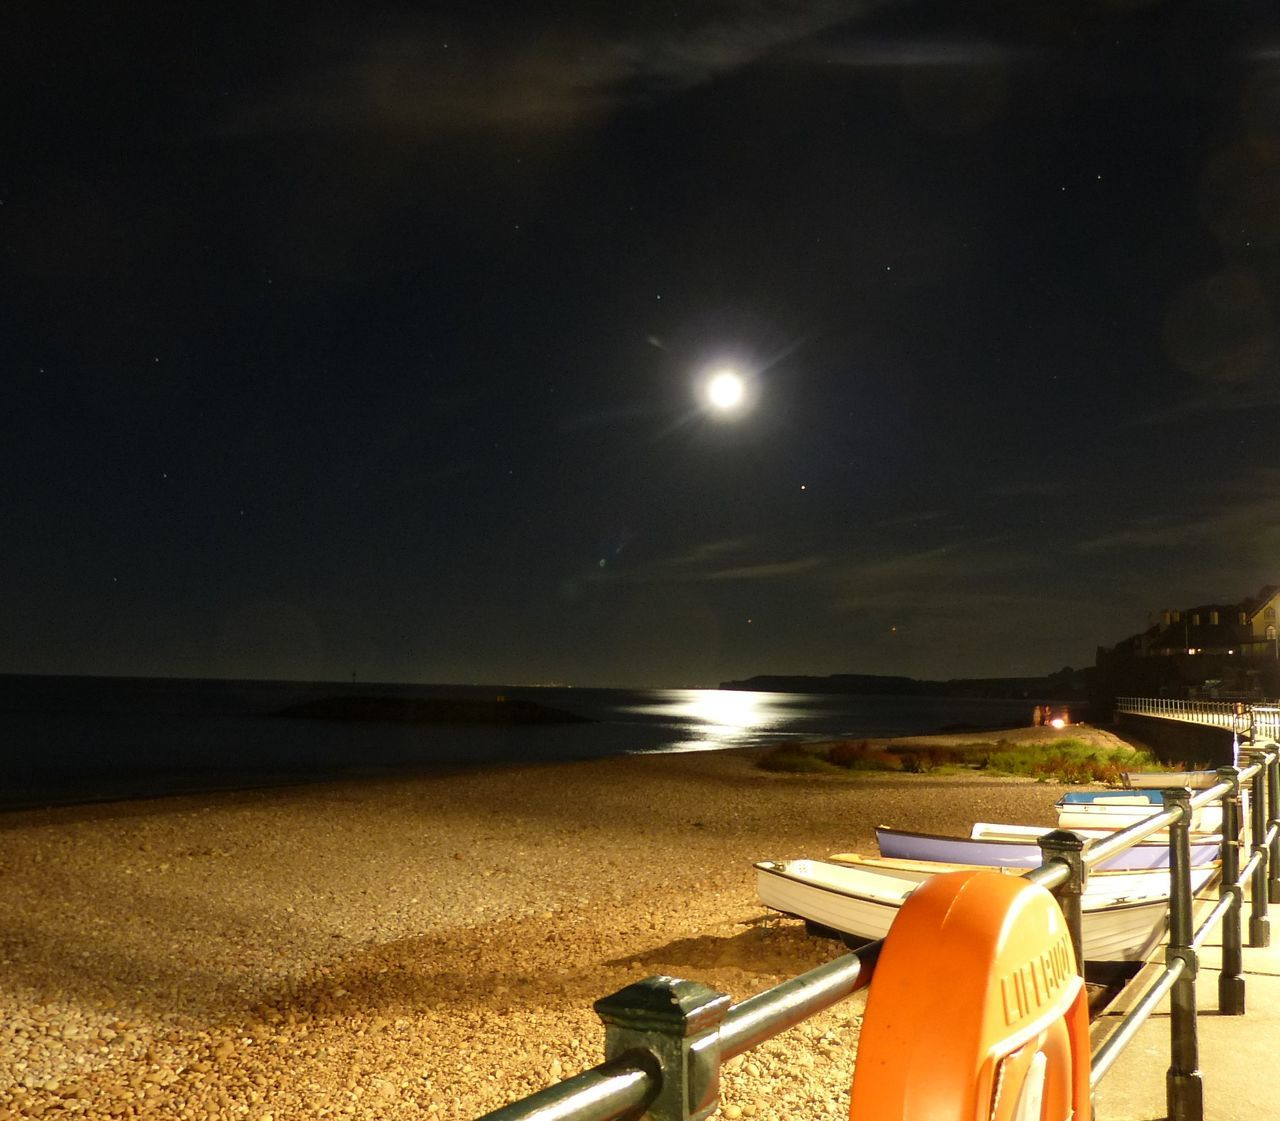 night, water, nature, illuminated, sea, moon, beauty in nature, sky, tranquility, beach, scenics, tranquil scene, outdoors, sand, no people, horizon over water, star - space, astronomy